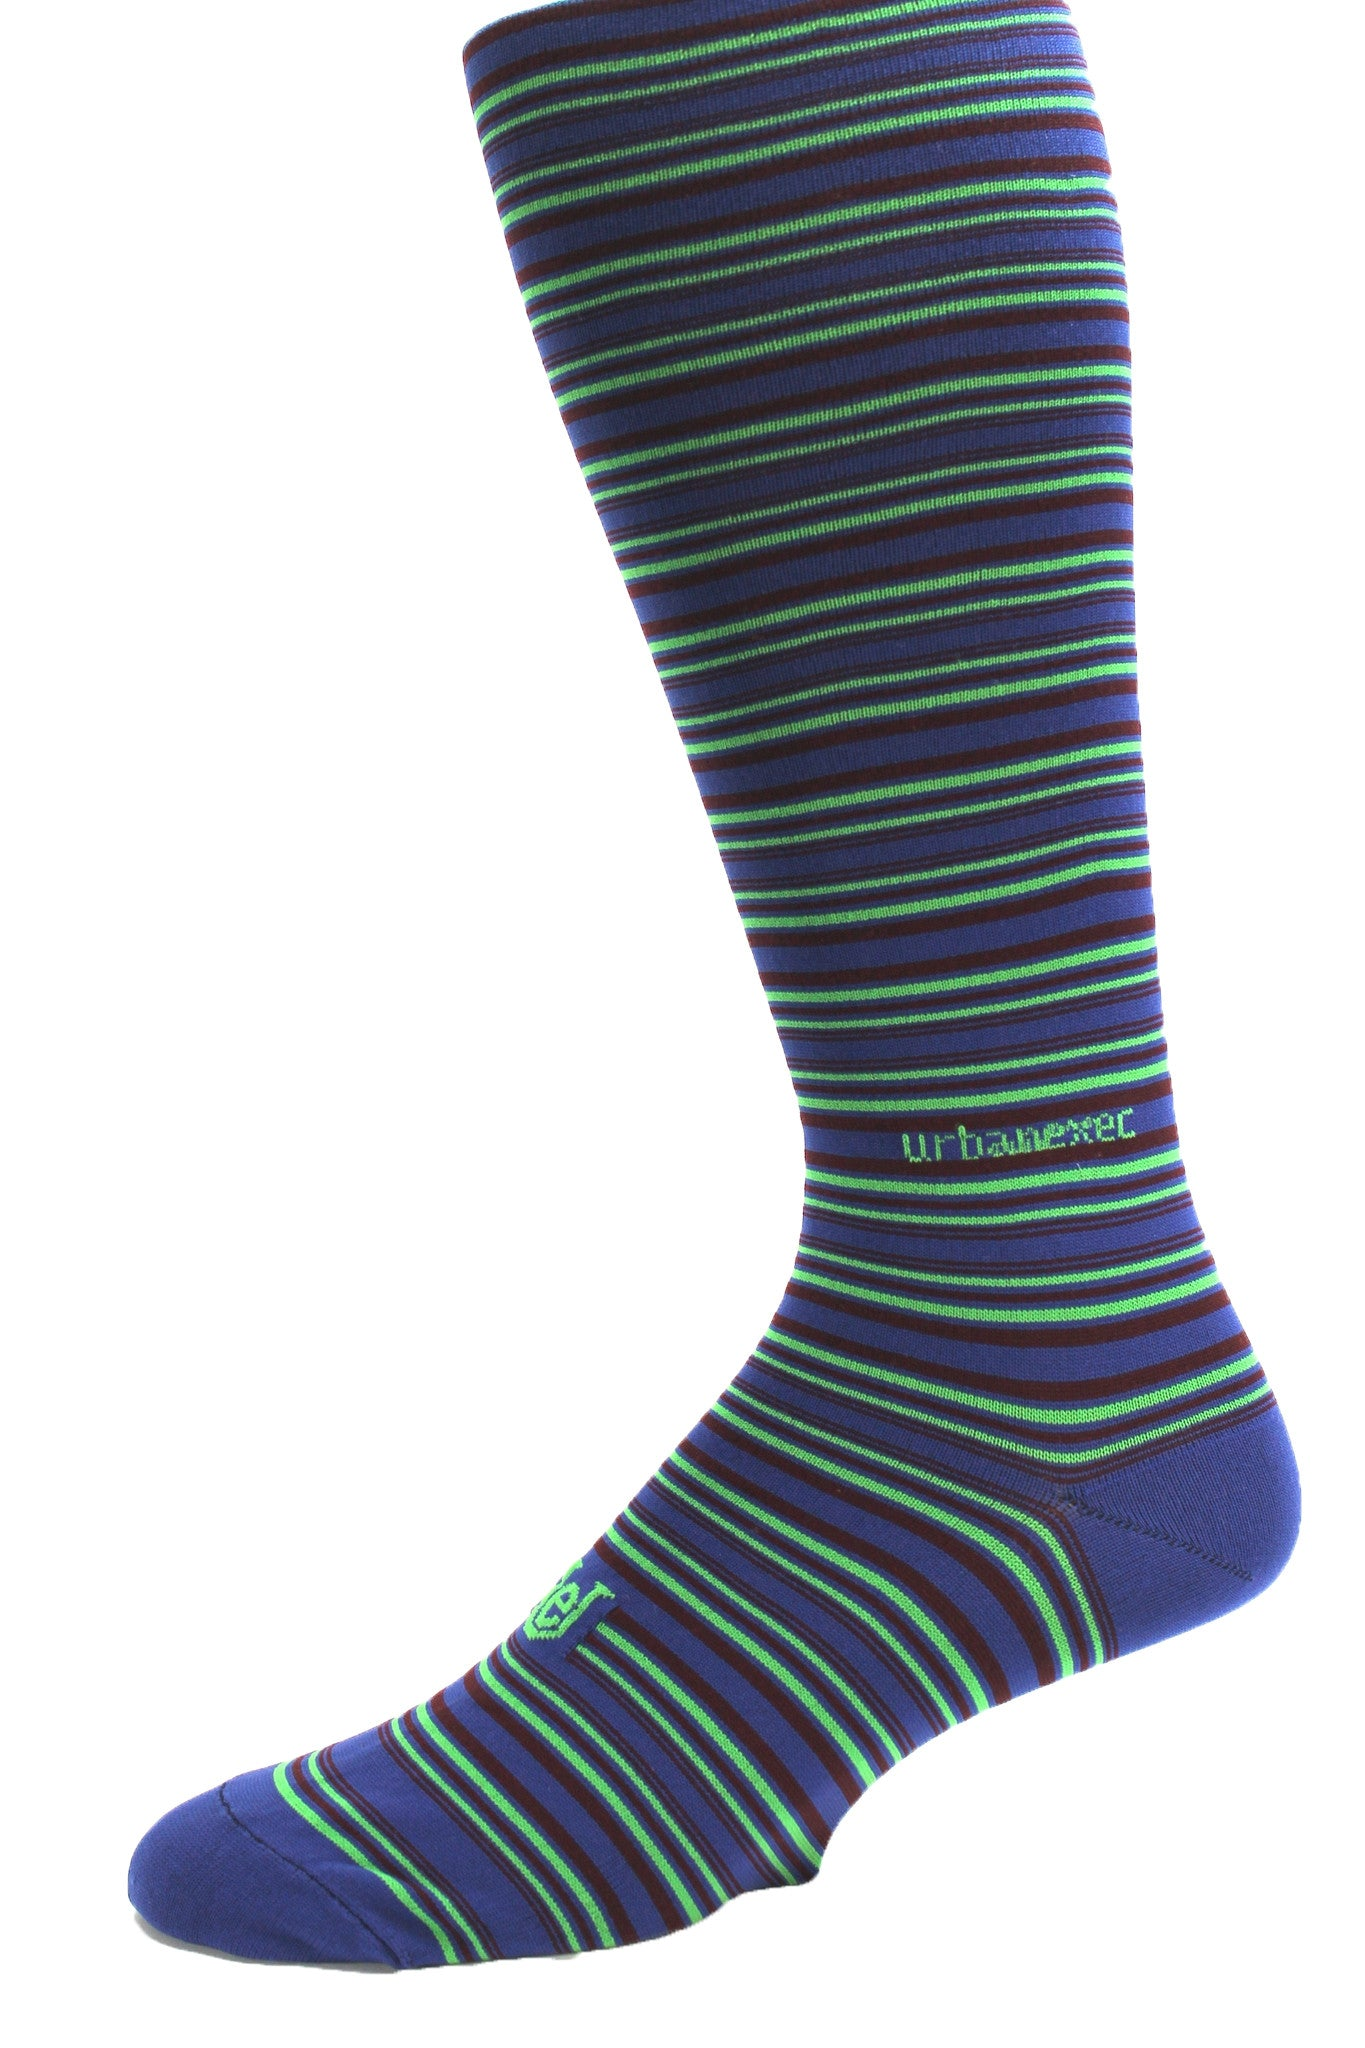 Performance ThinSkin Stripes Ink Blue/Bright SeaGreen/Wine